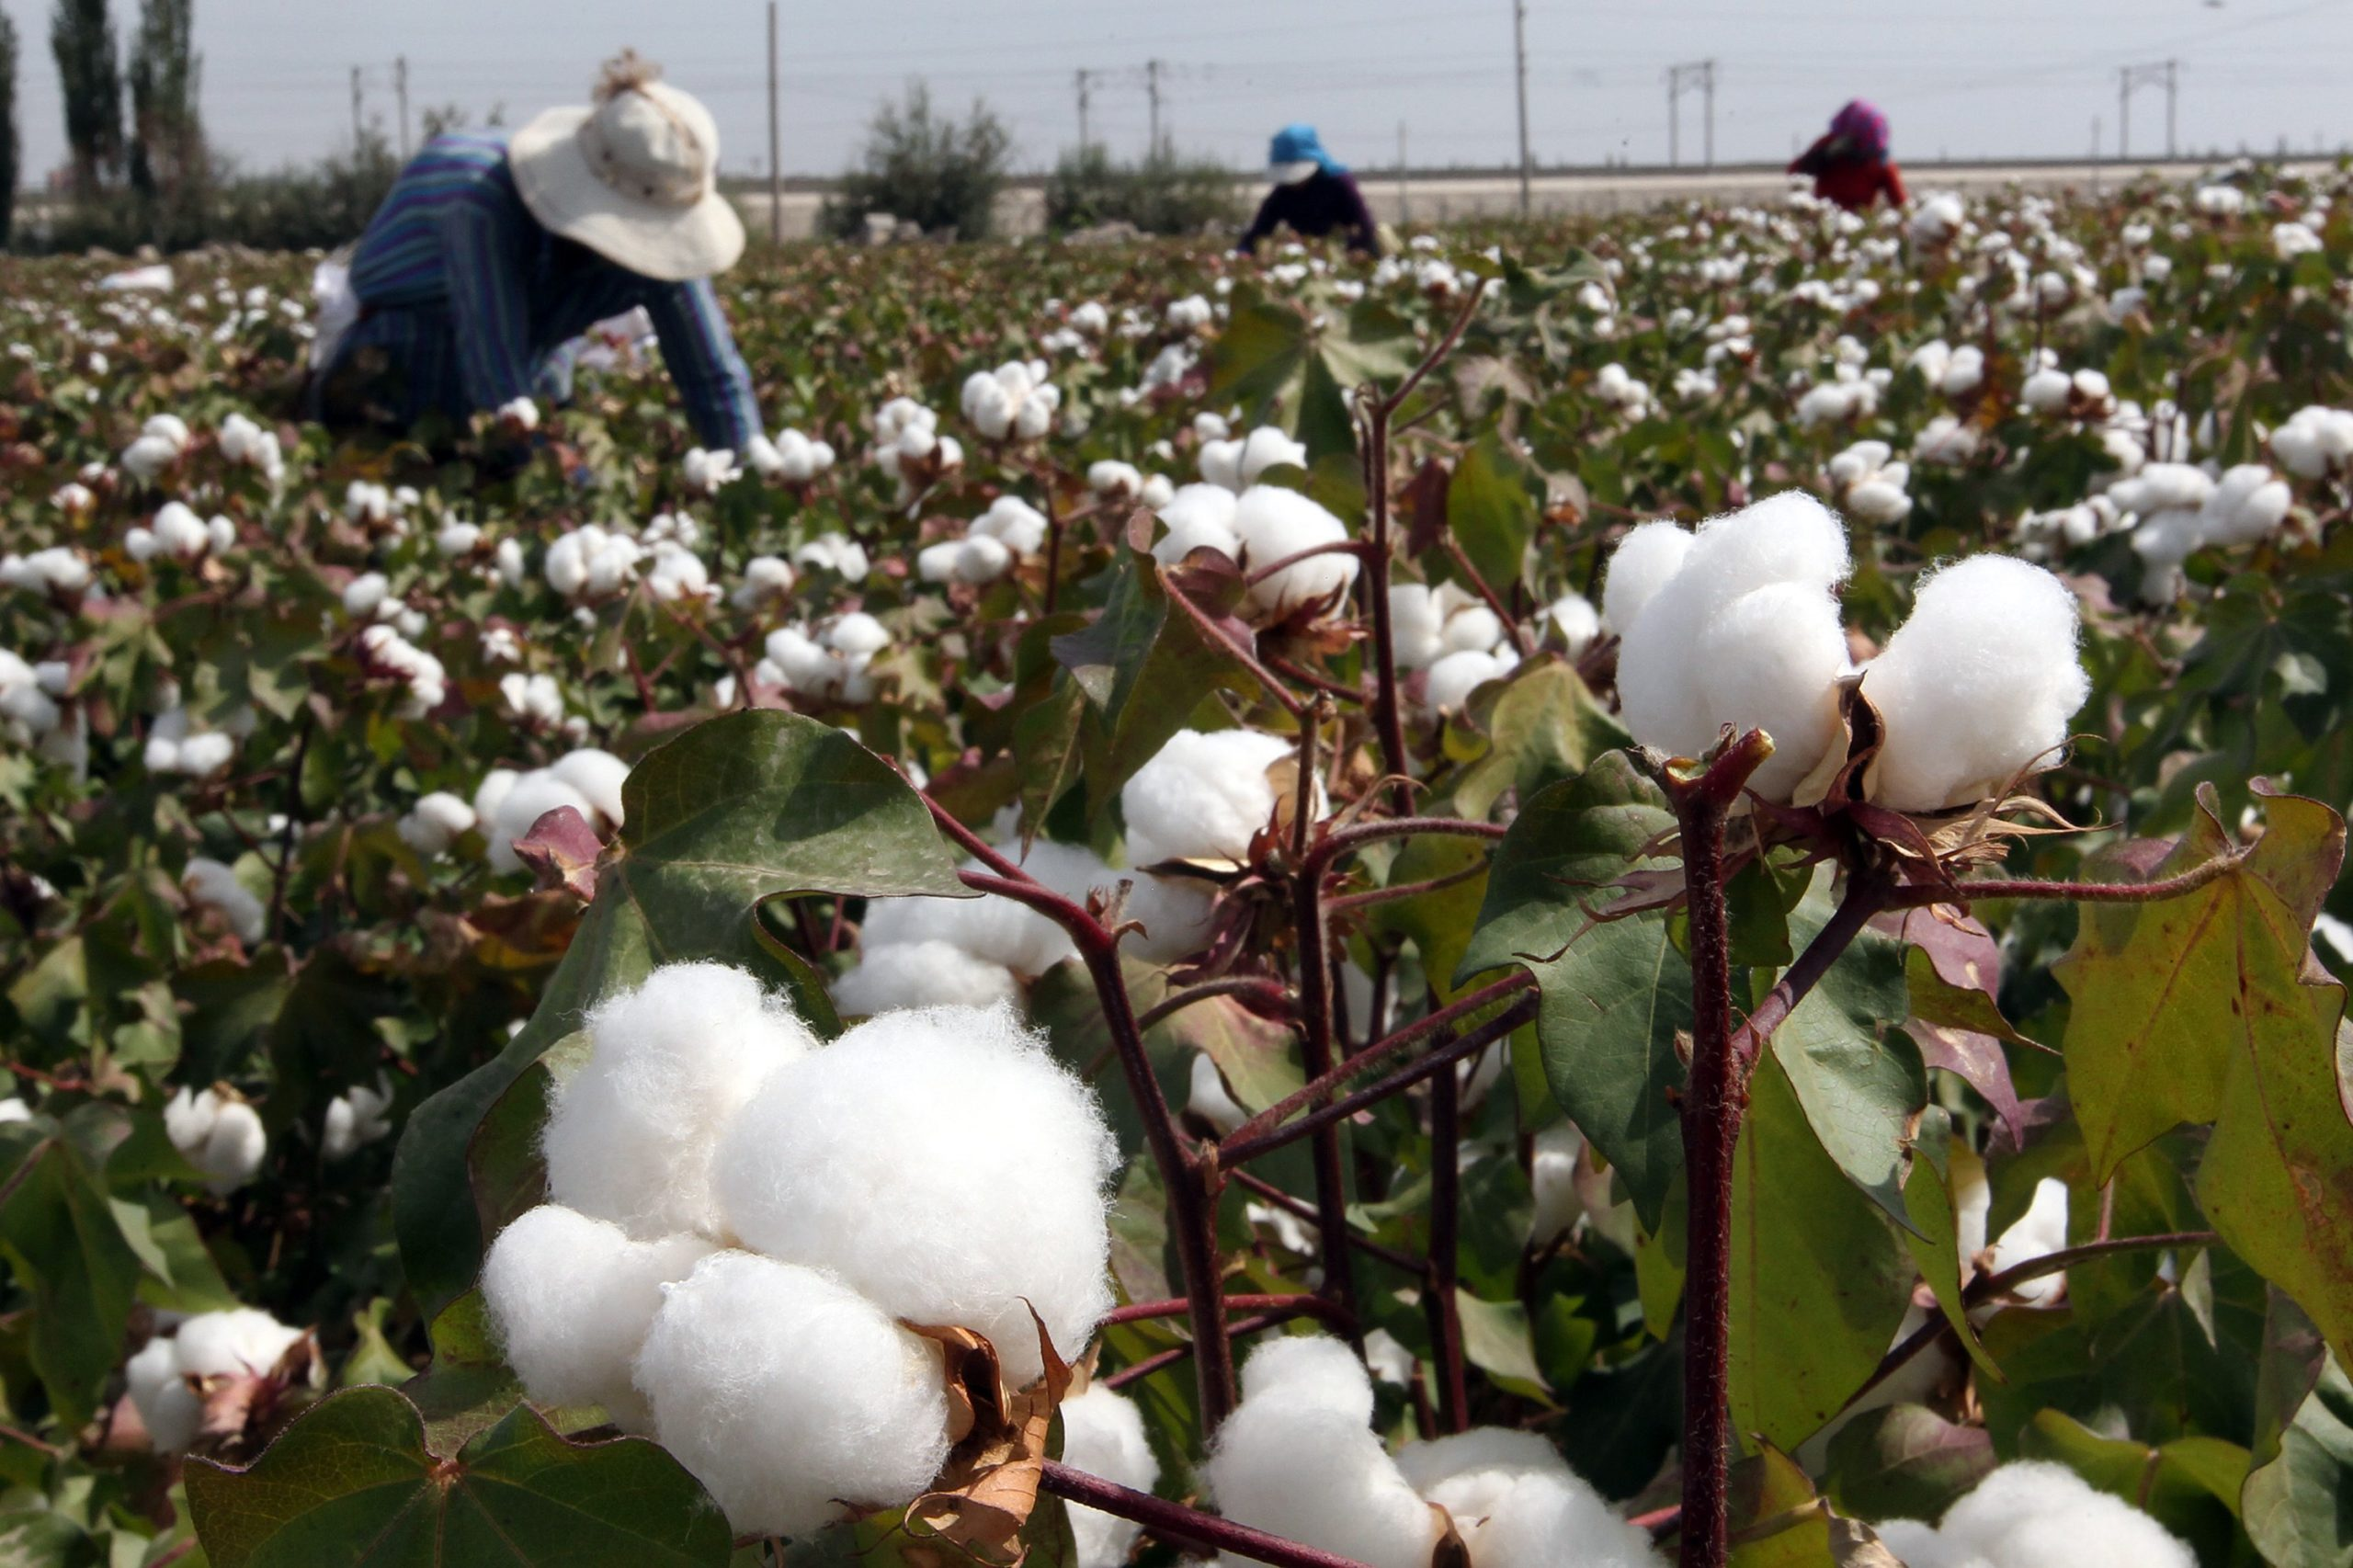 This photo taken on September 20, 2015 shows Chinese farmers picking cotton in the fields during the harvest season in Hami, in northwest China's Xinjiang region. Chinese Premier Li Keqiang urged reforms on September 20 of inefficient state-owned enterprises as his government tries to restore confidence in its slowing economy, state media reported on September 20.CHINA OUT AFP PHOTO (Photo credit should read STR/AFP via Getty Images)